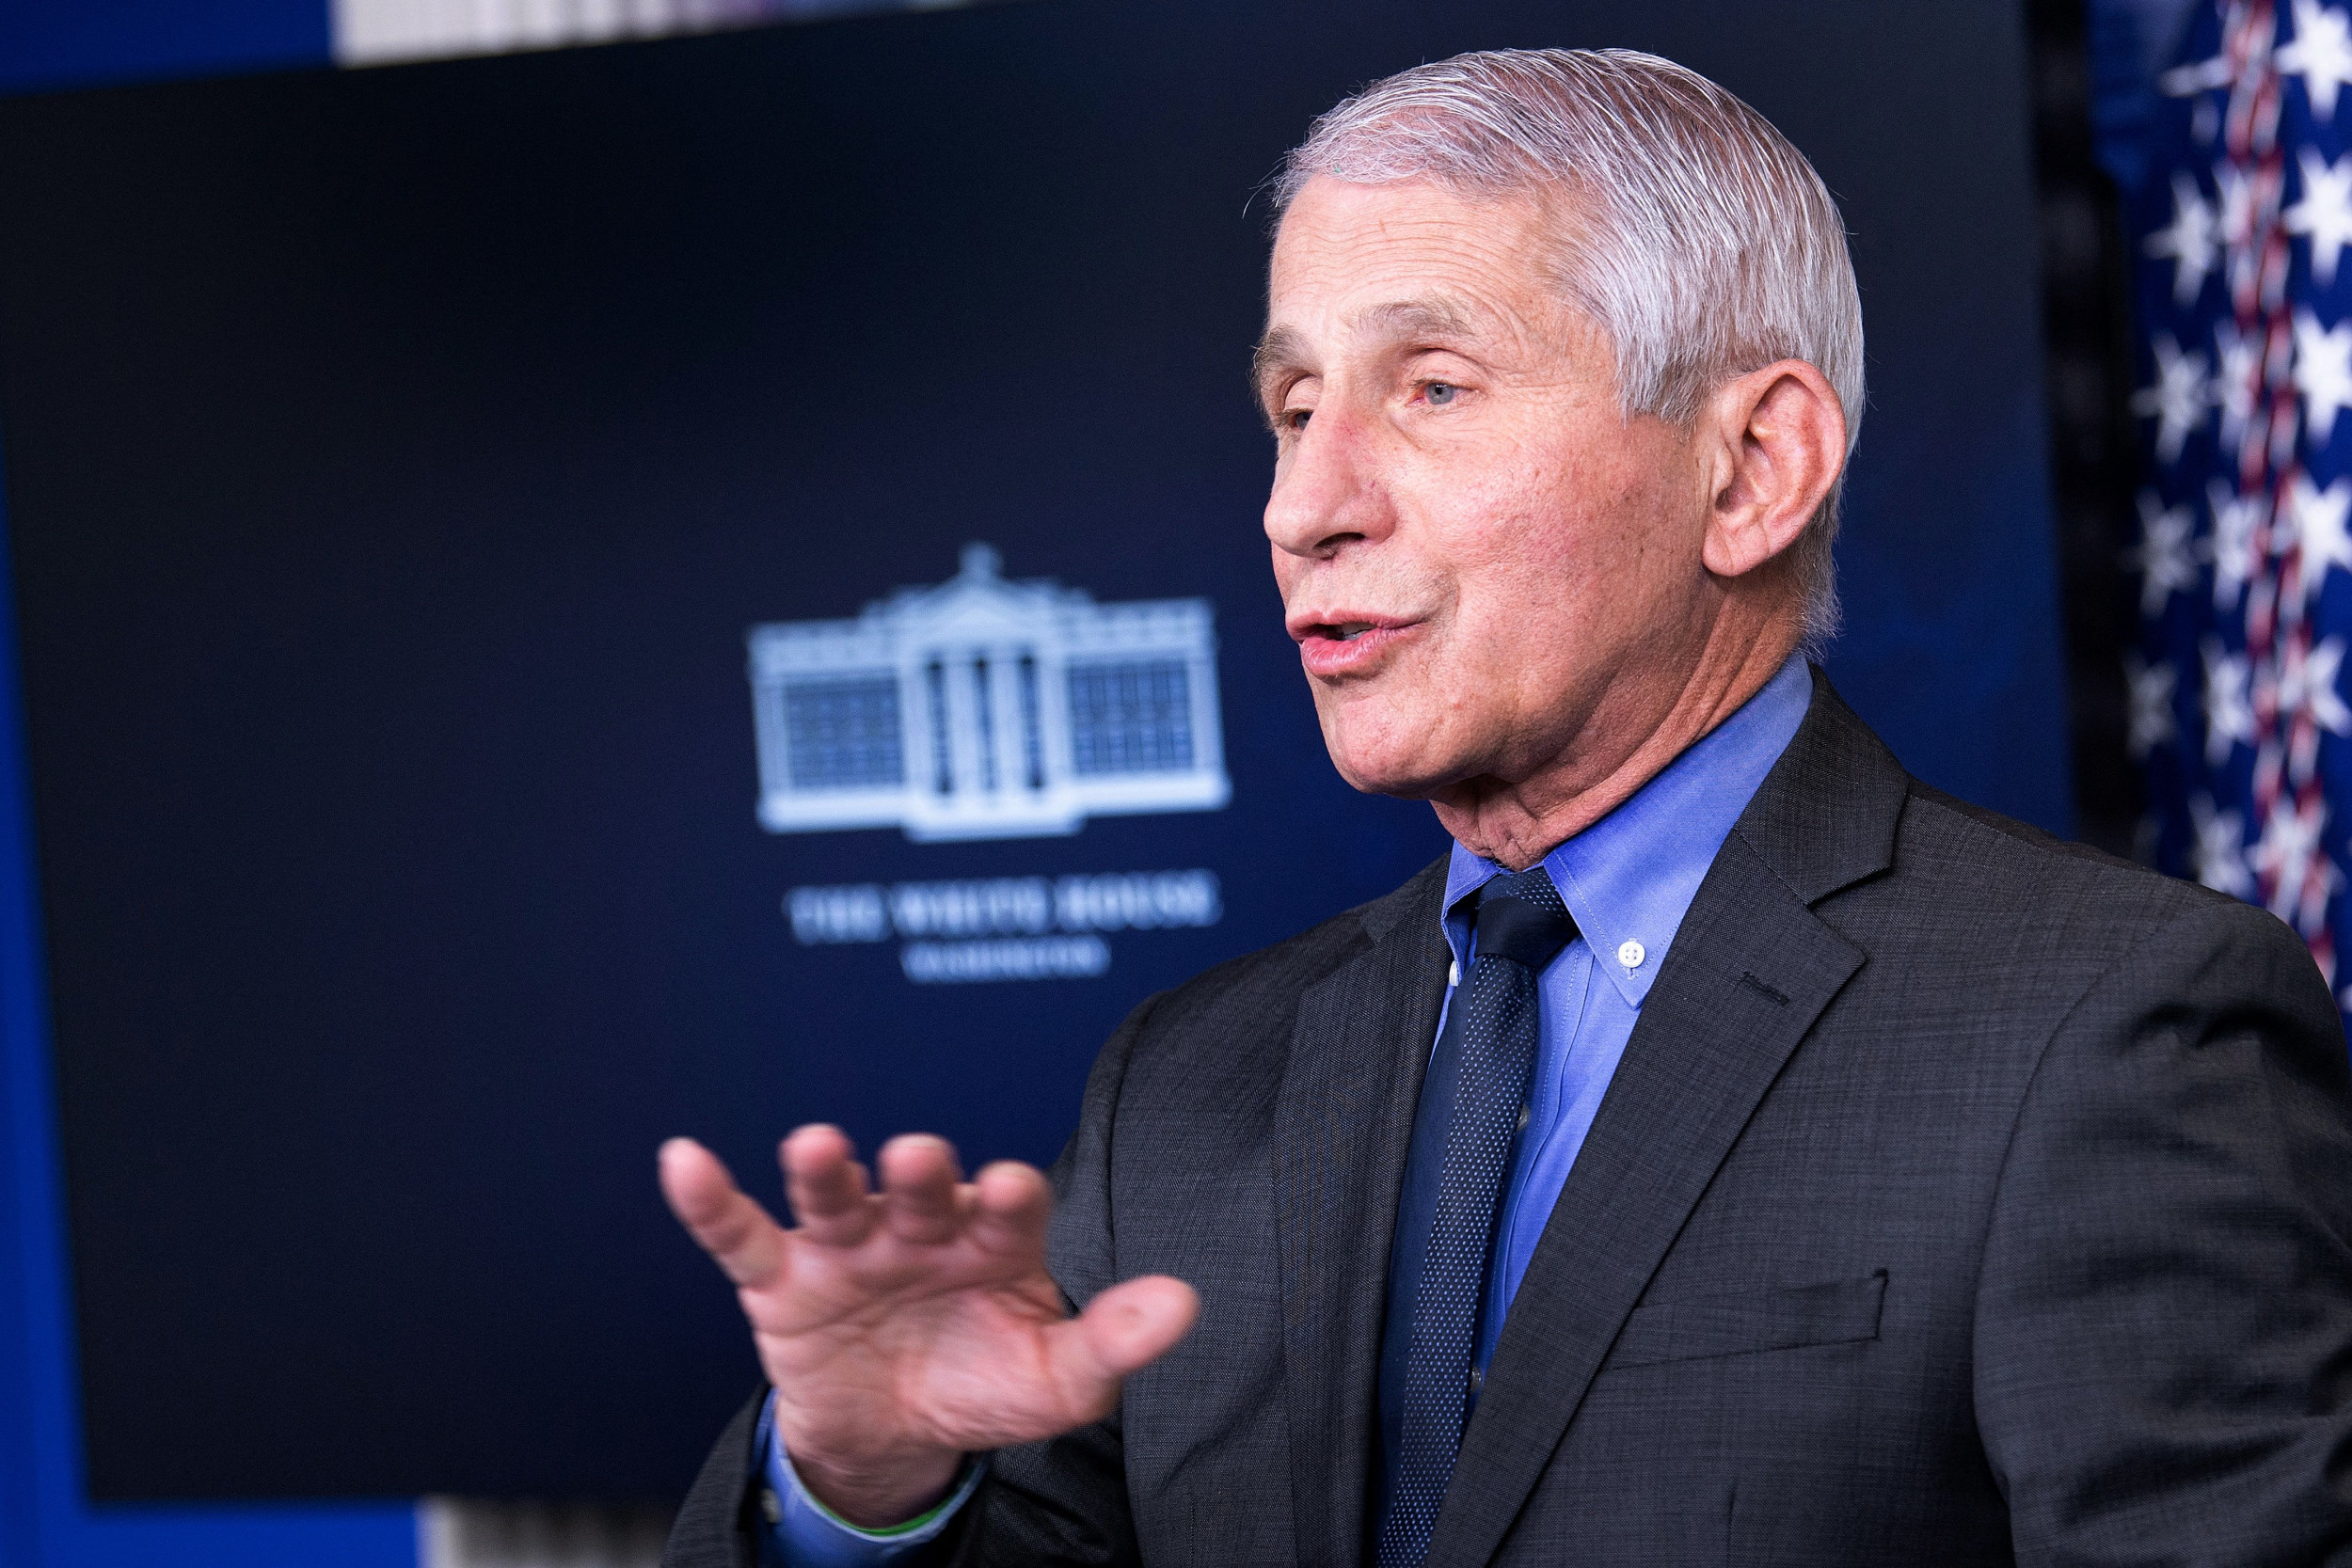 What Dr. Fauci Has Said About Johnson & Johnson Vaccine